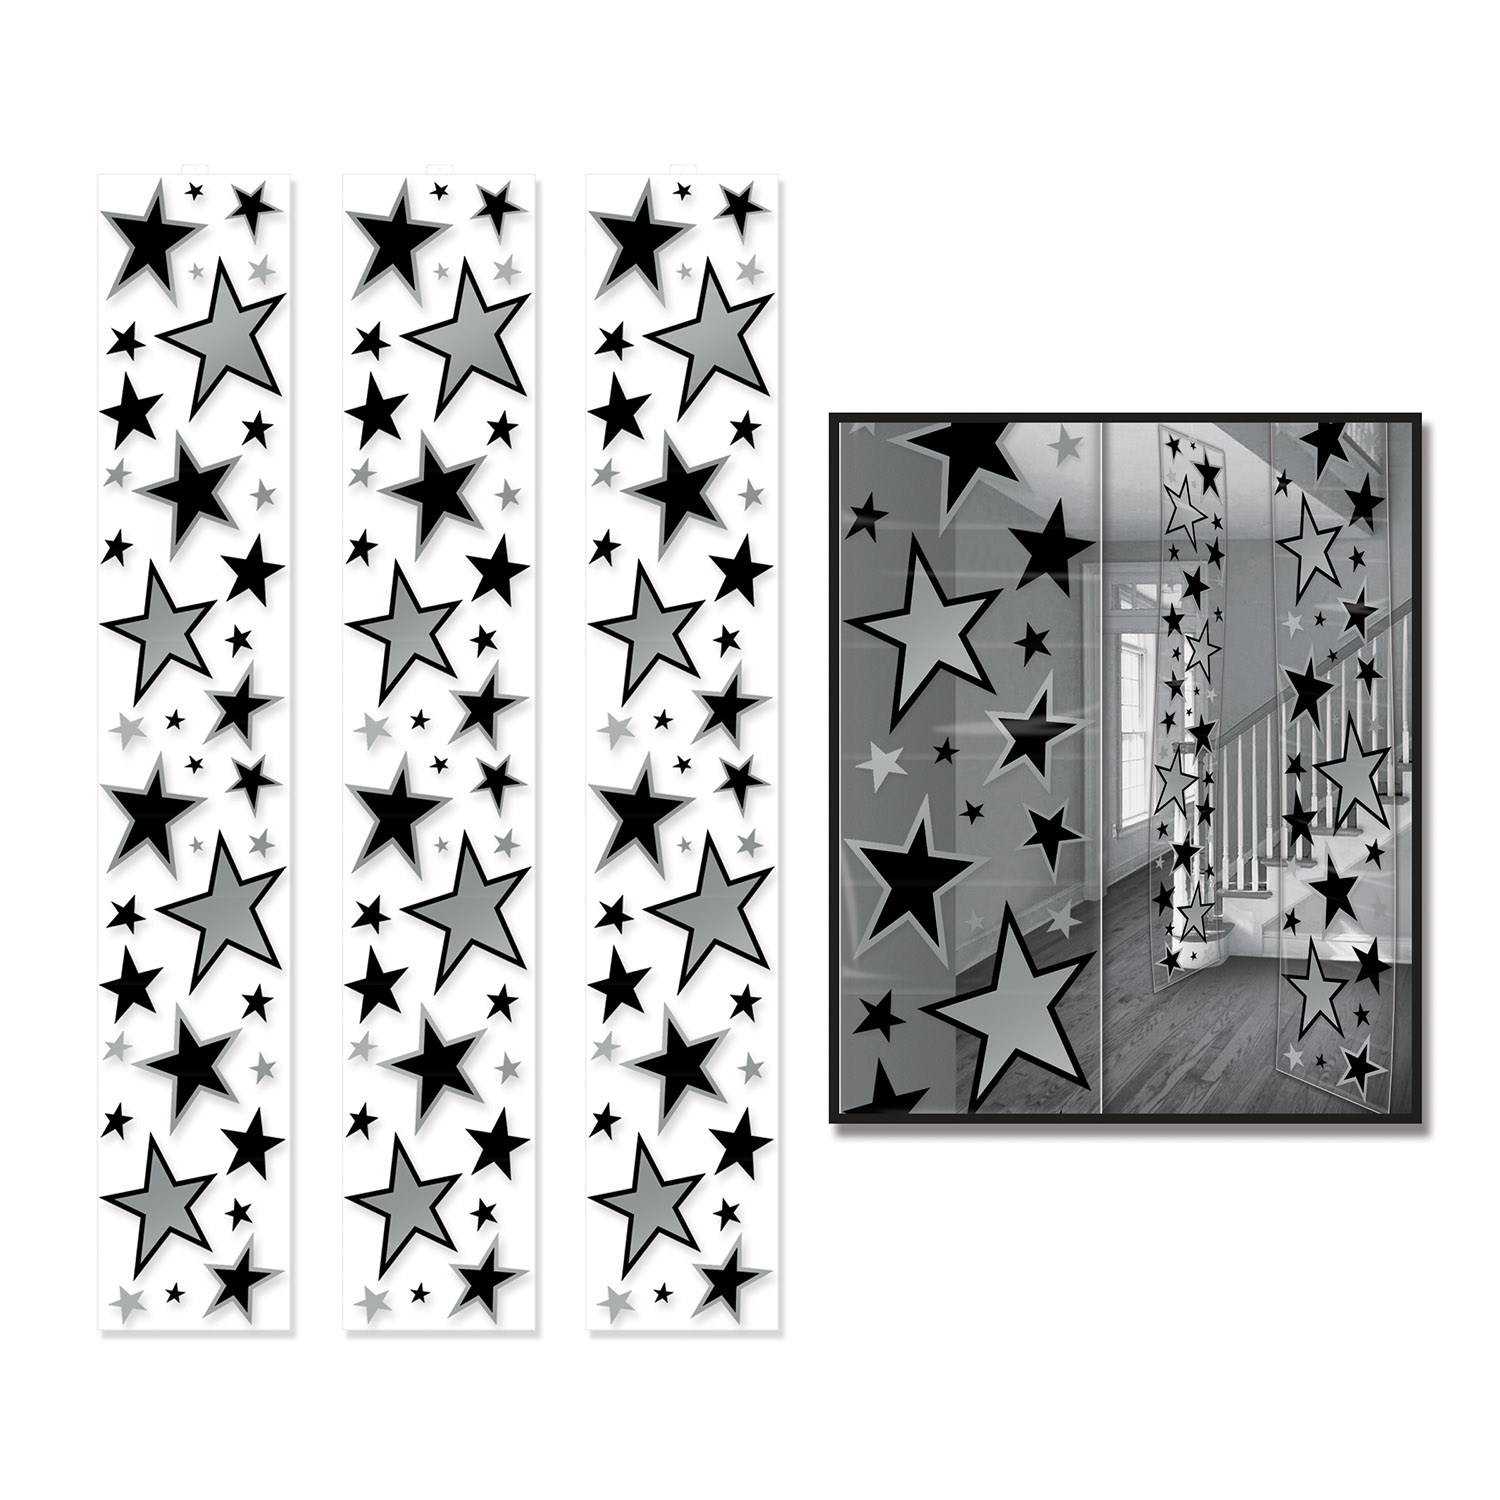 Clear Star Party Panels with silver and black stars in various sizes.